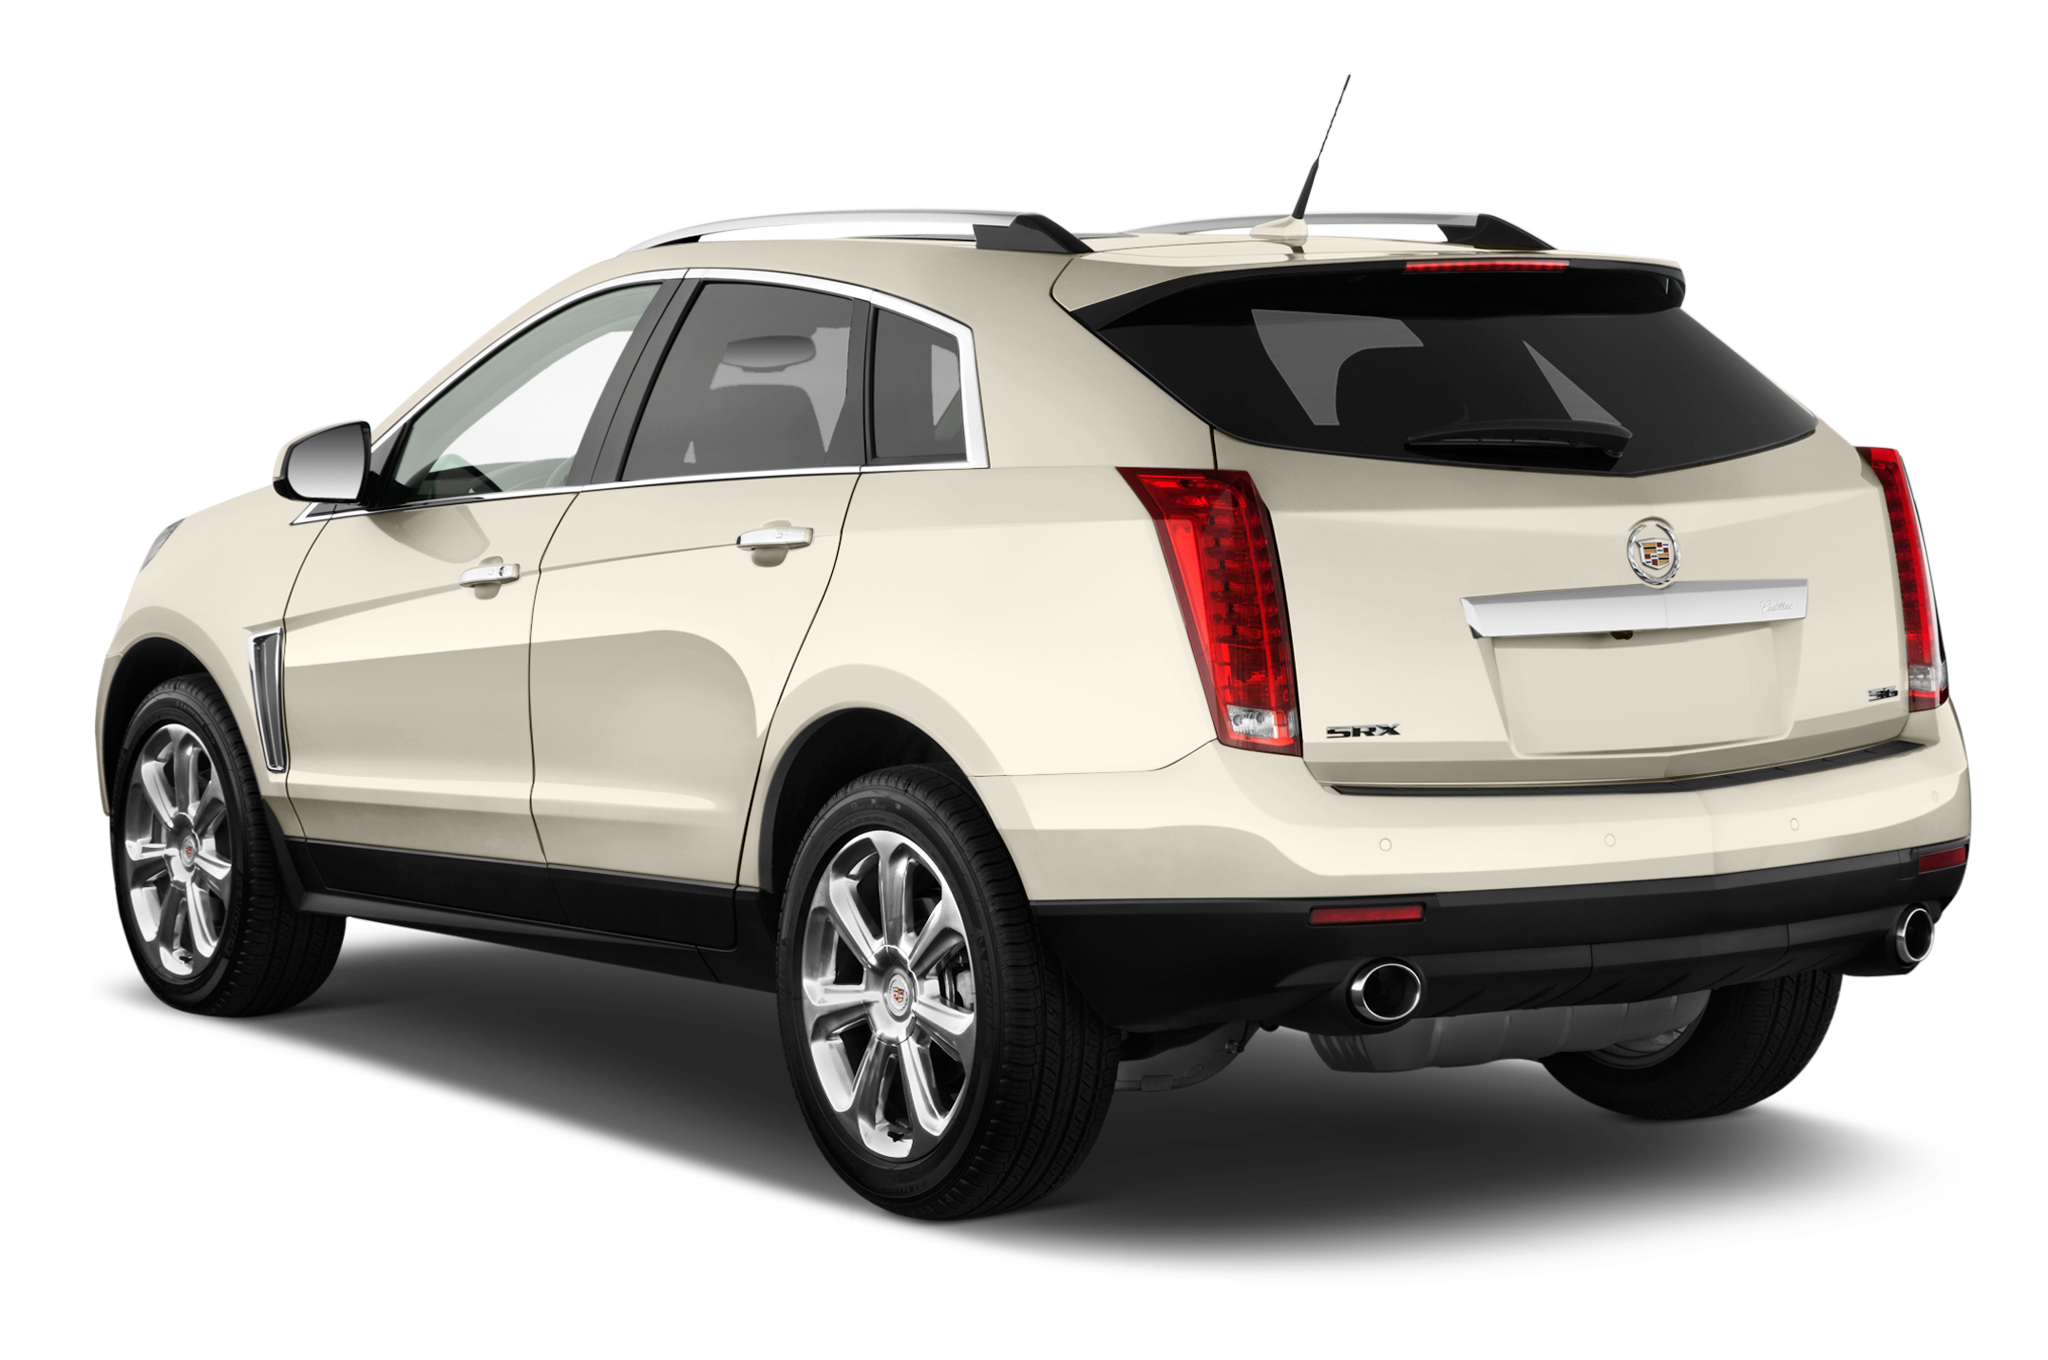 cadillac srx ii 2009 2012 suv 5 door outstanding cars rh carsot com 2013 cadillac srx manual 2012 cadillac srx manual key start